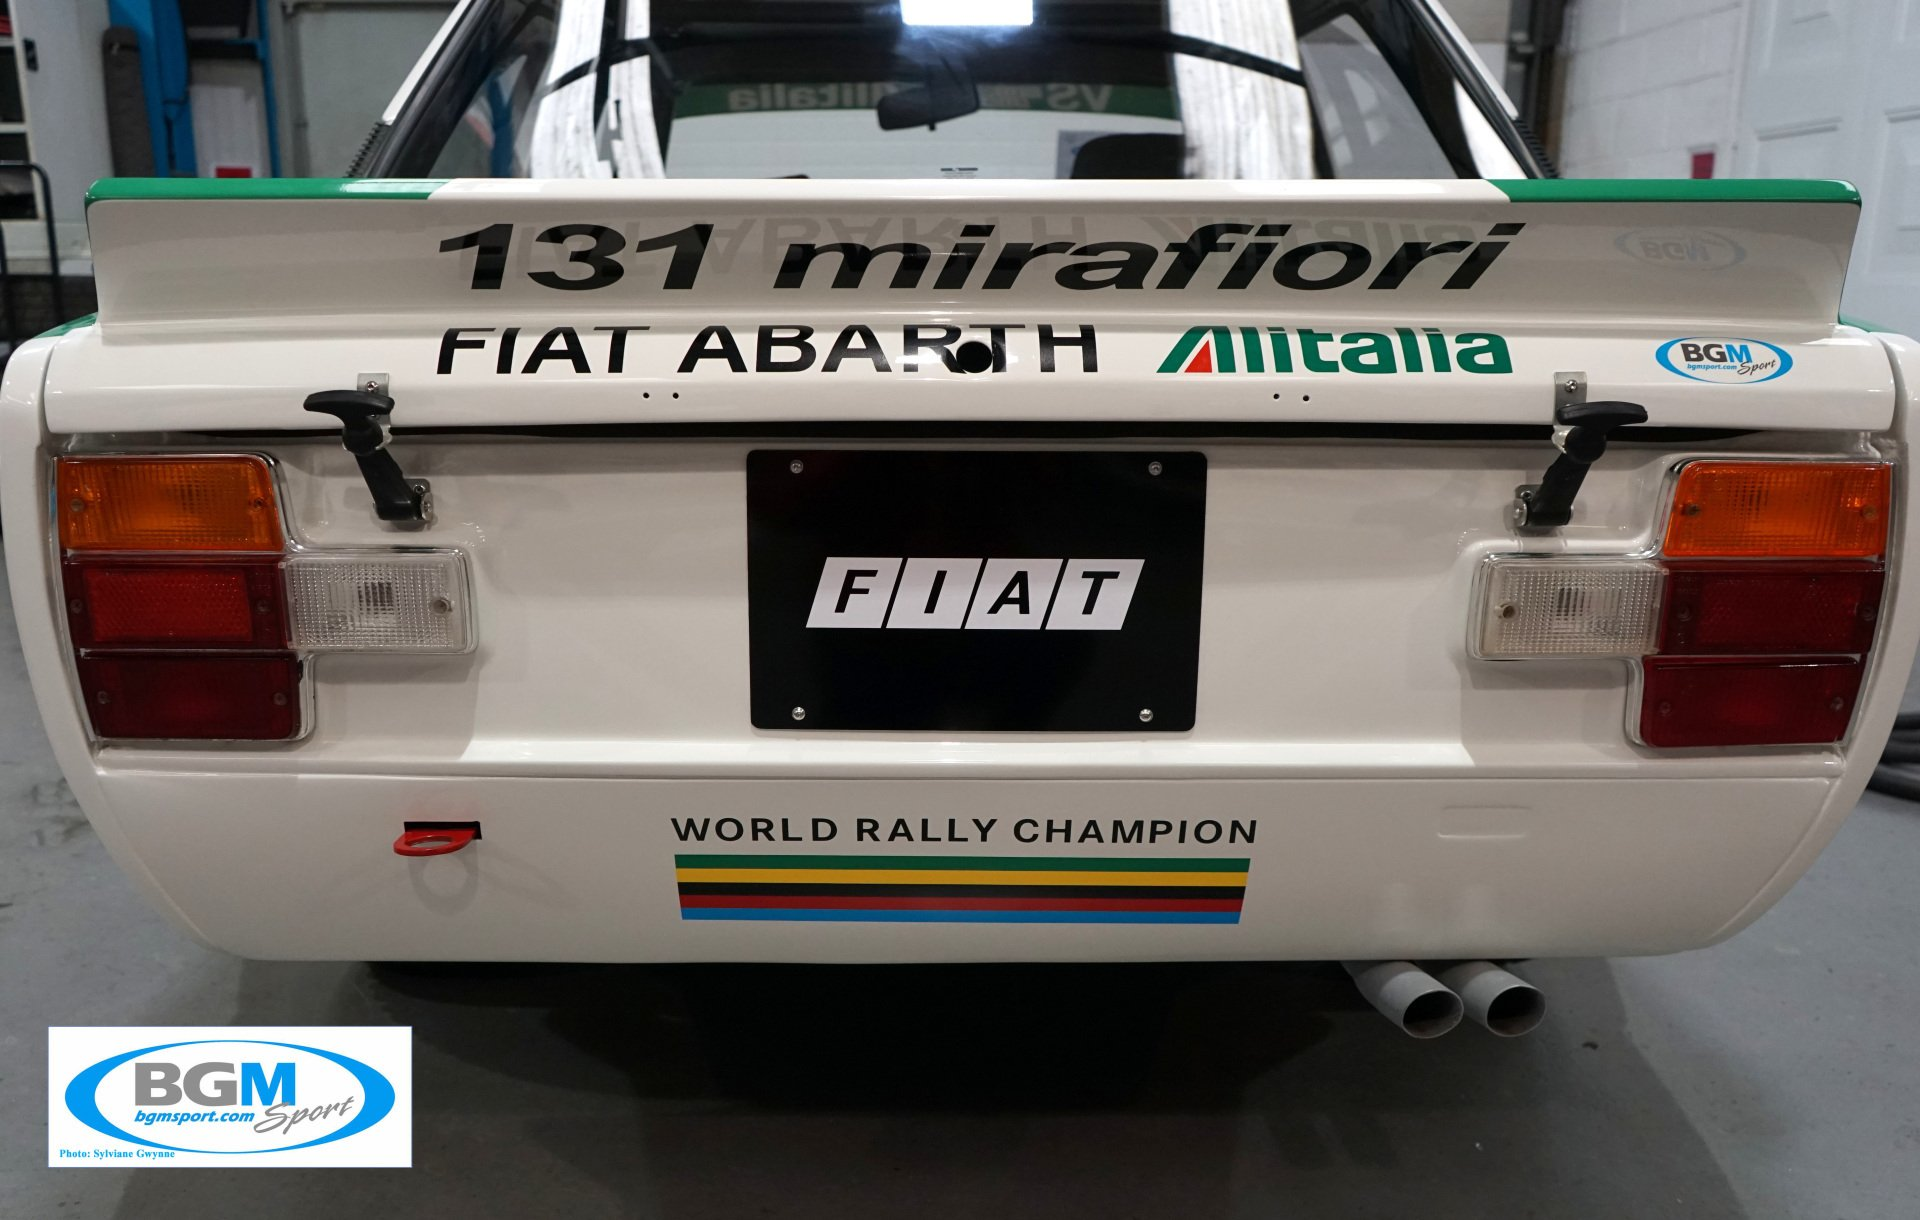 fiat-131-abarth-grp-4-rally-car-51